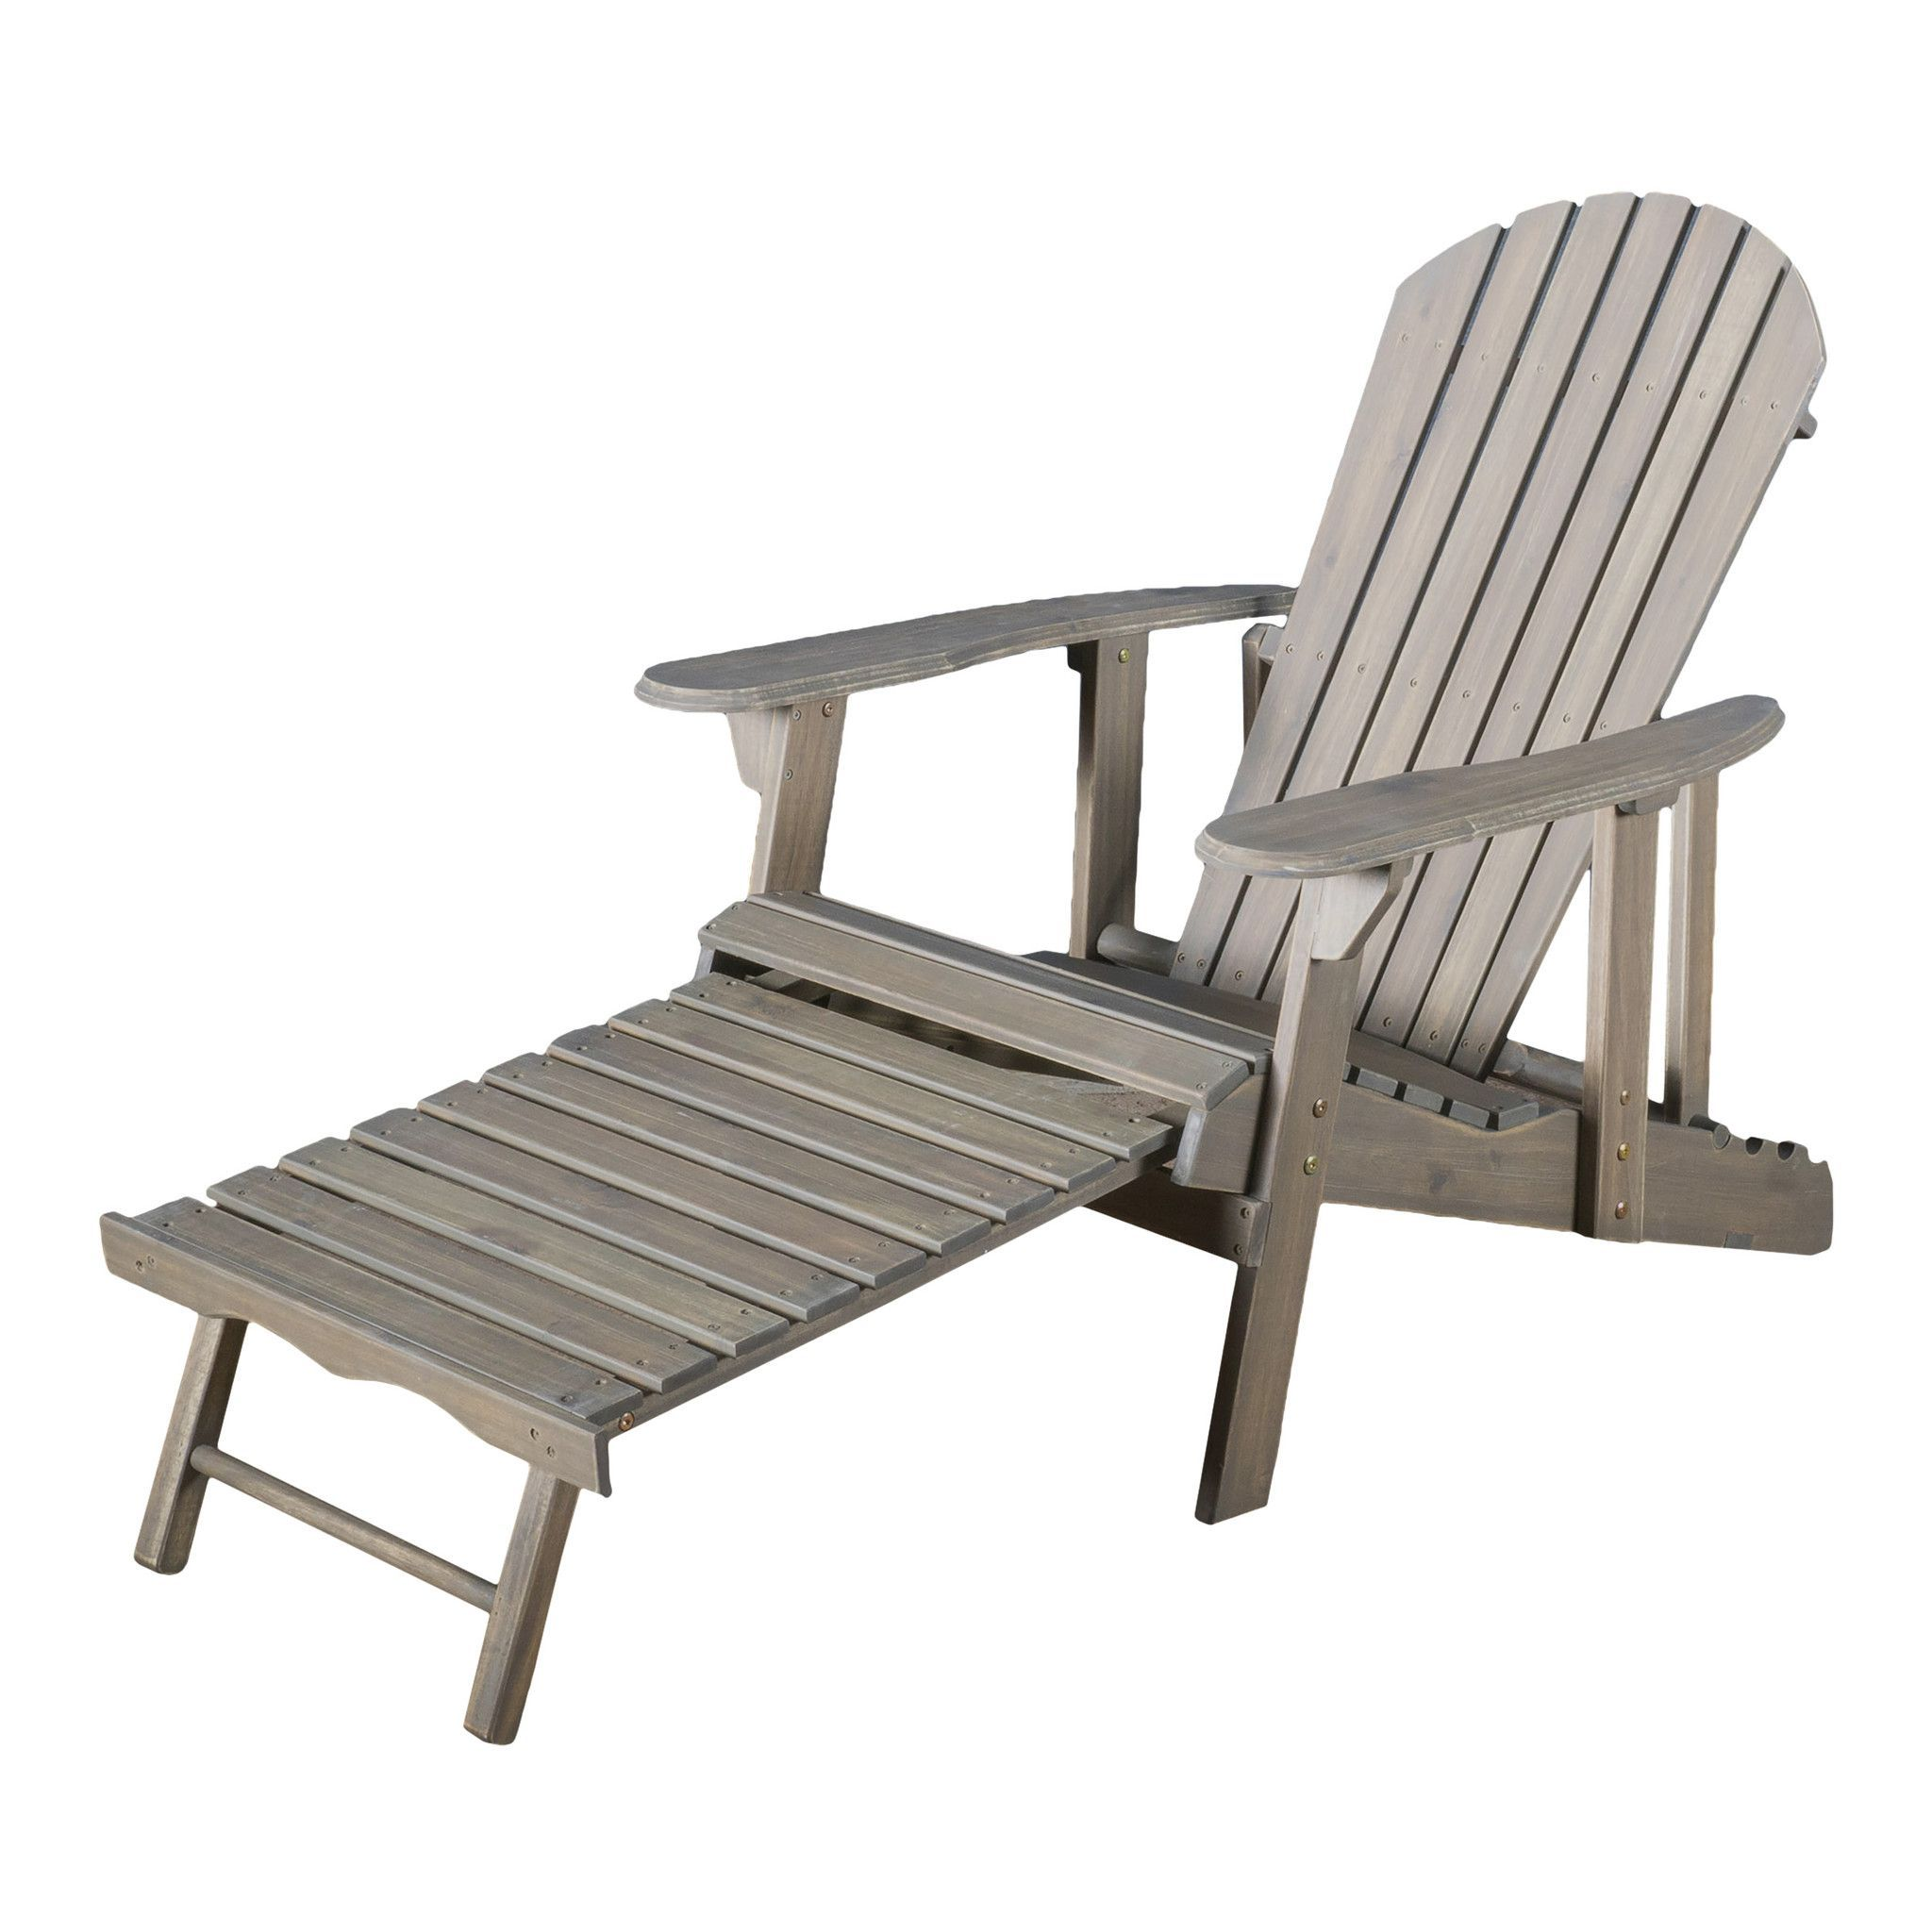 Denise Austin Home Katherine Outdoor Reclining Wood Adirondack Chair With  Footrestst